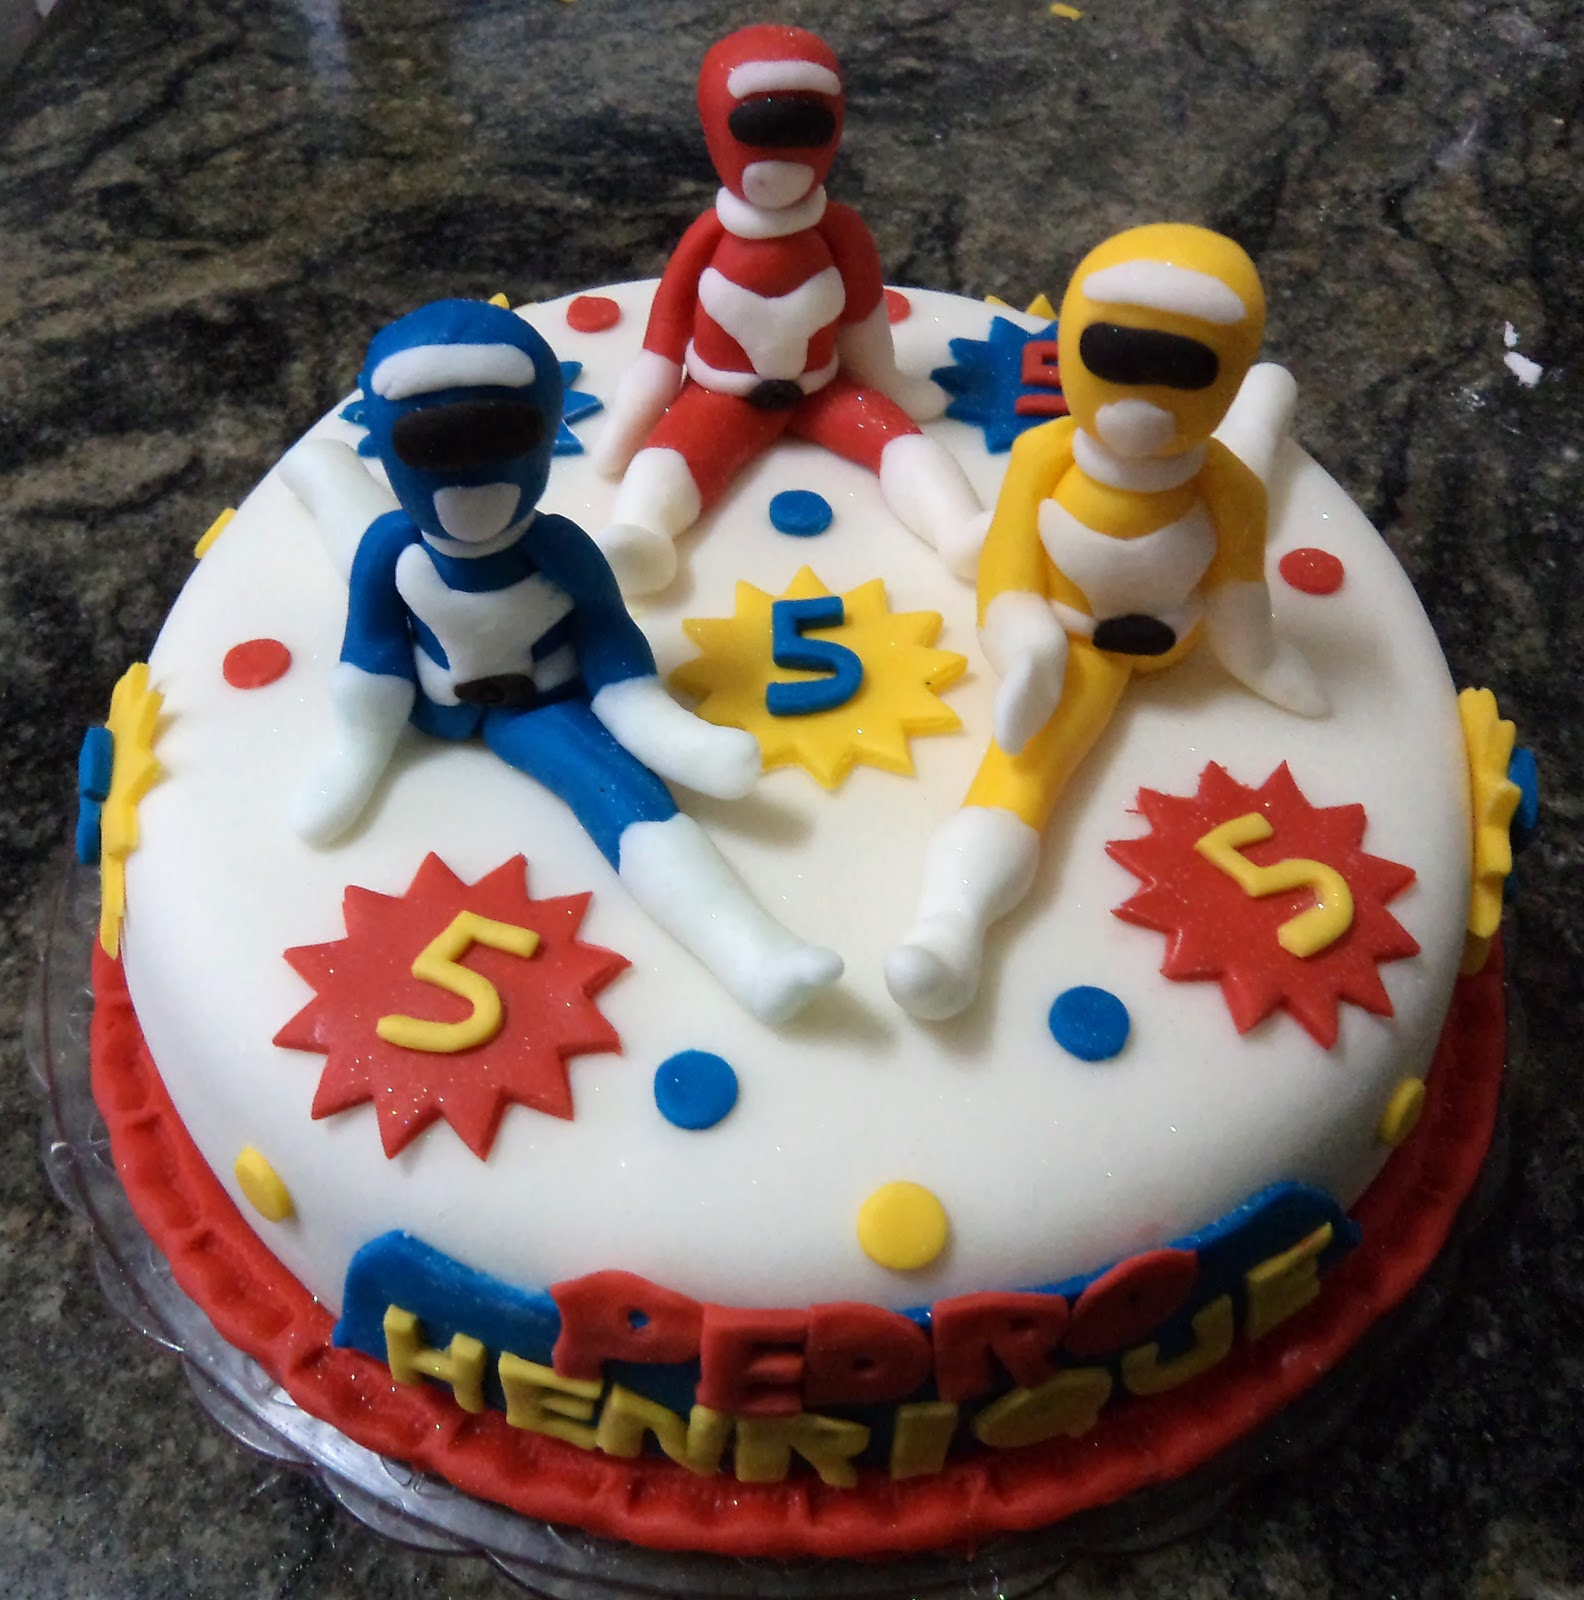 Power Rangers Birthday Cake 8 Power Ranger Birthday Party Cakes Photo Power Rangers Birthday